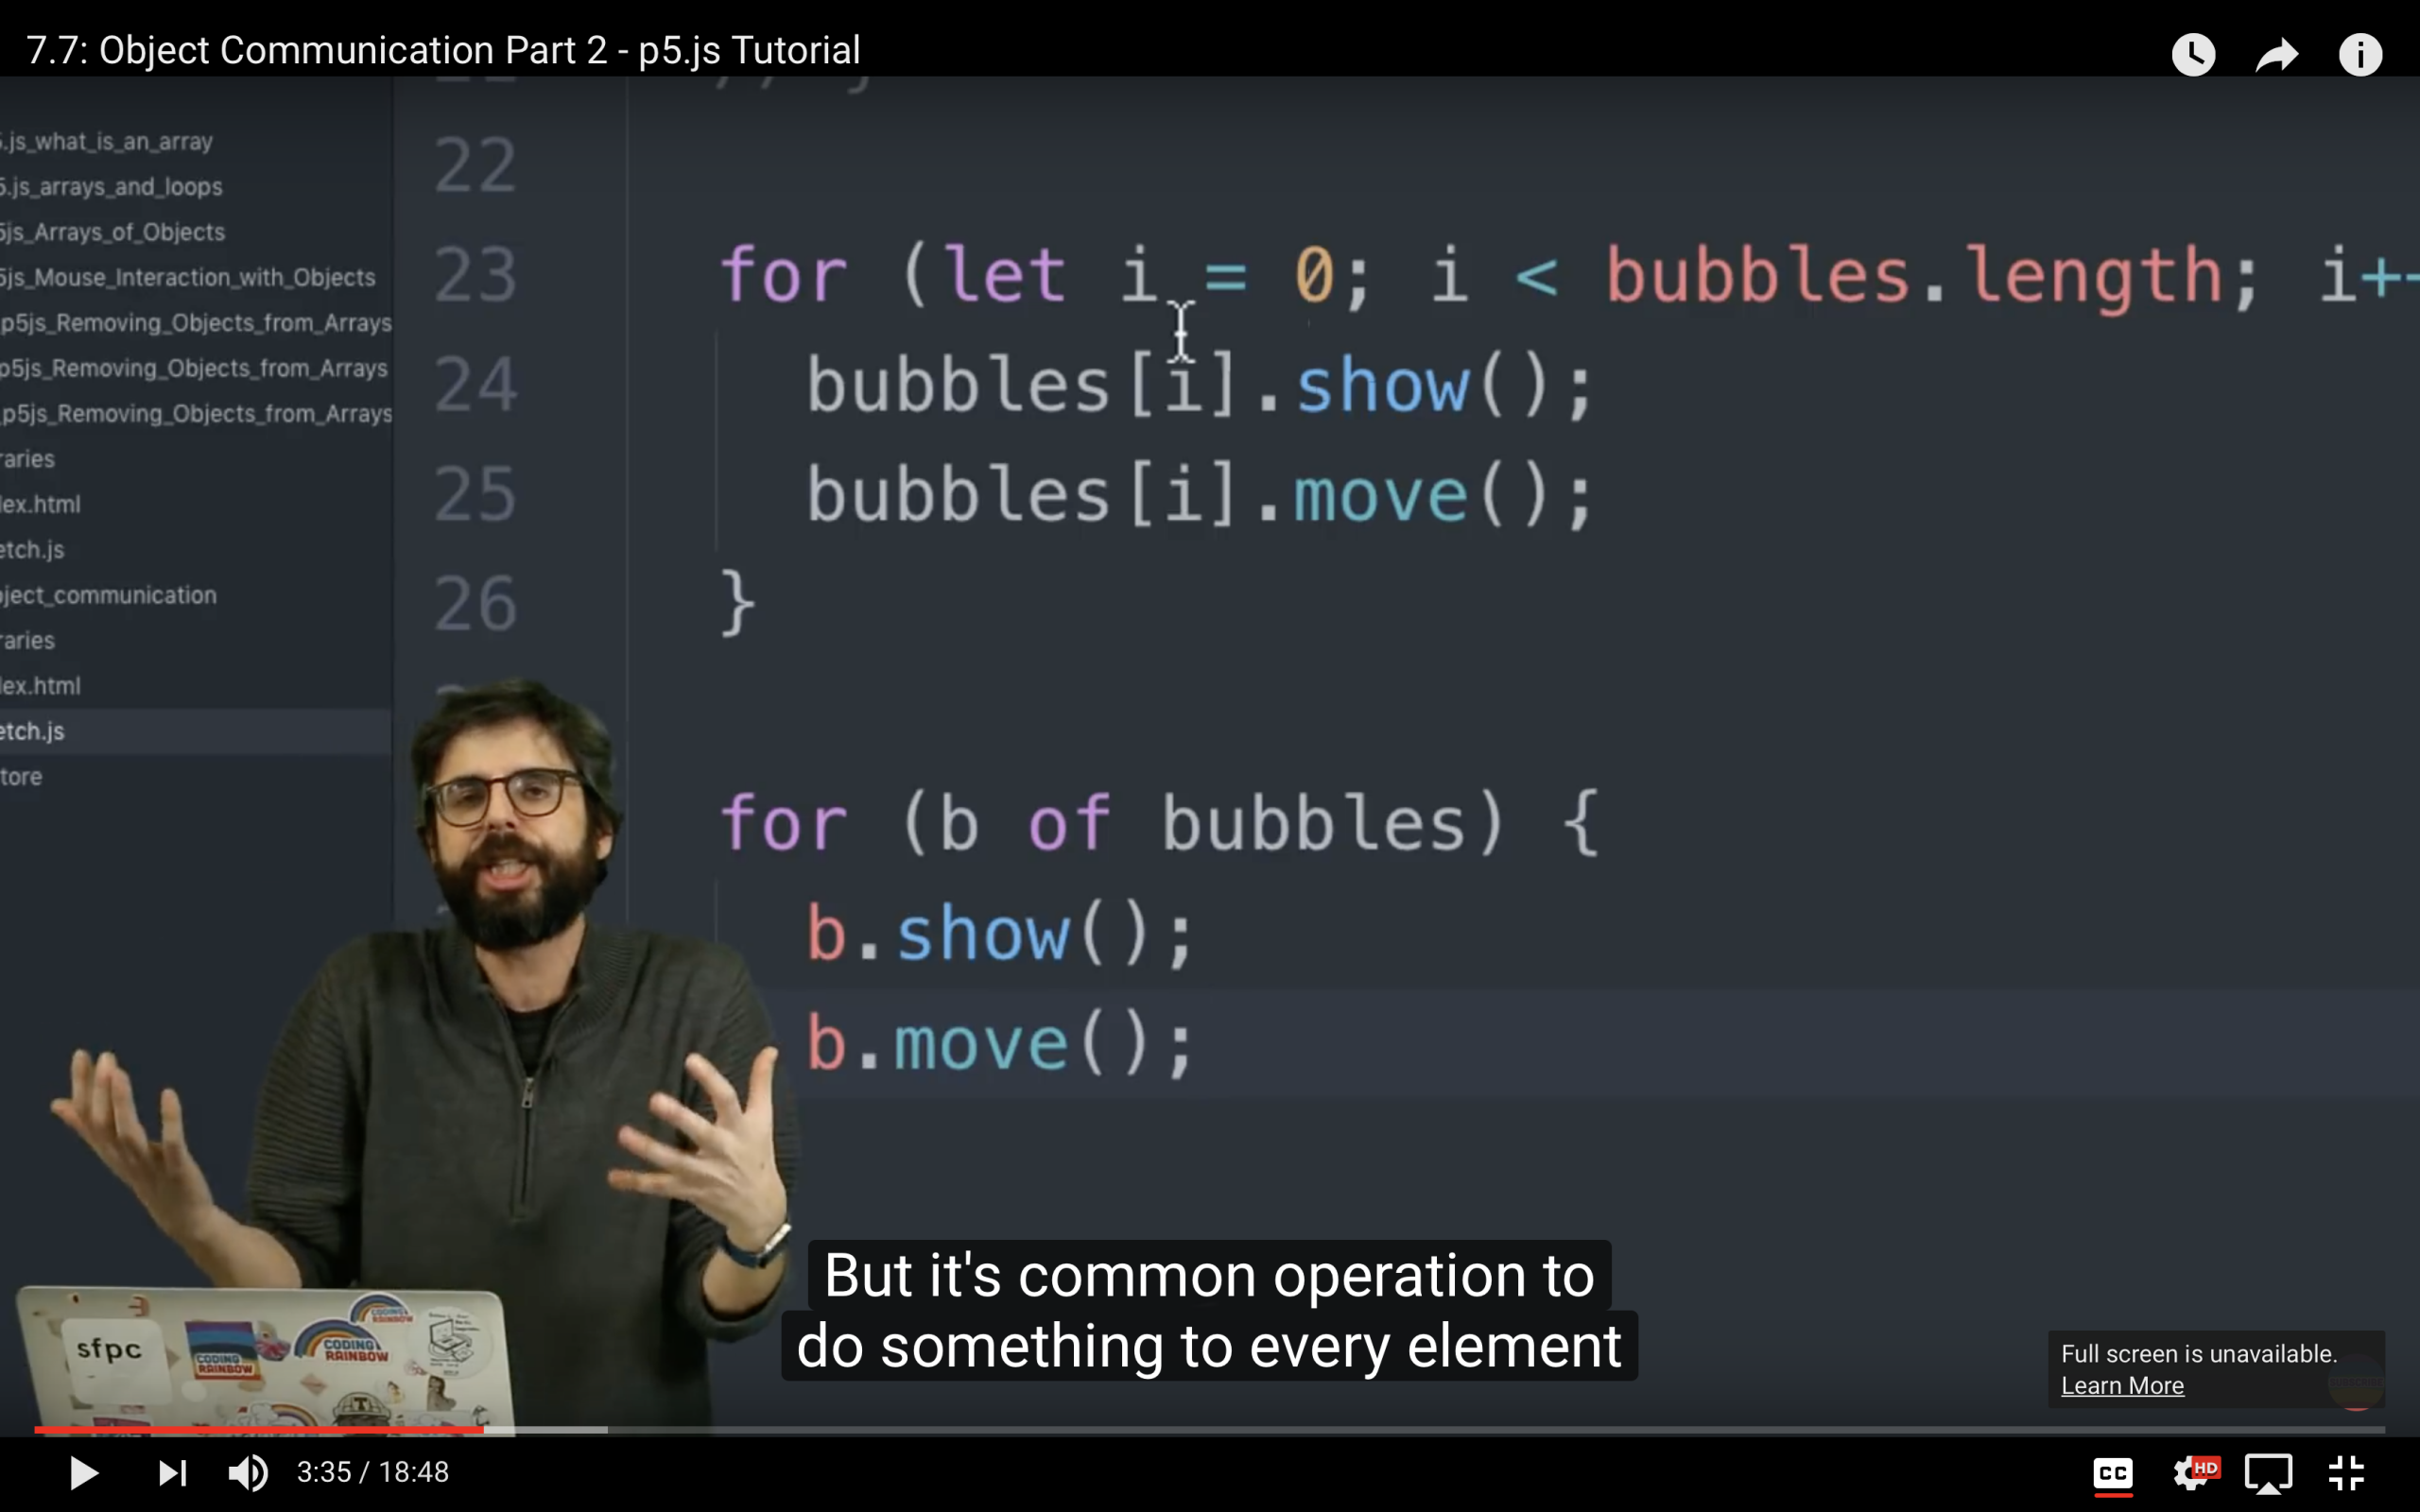 One of many, many Coding Train videos I watched to prepare me to tackle this final project.